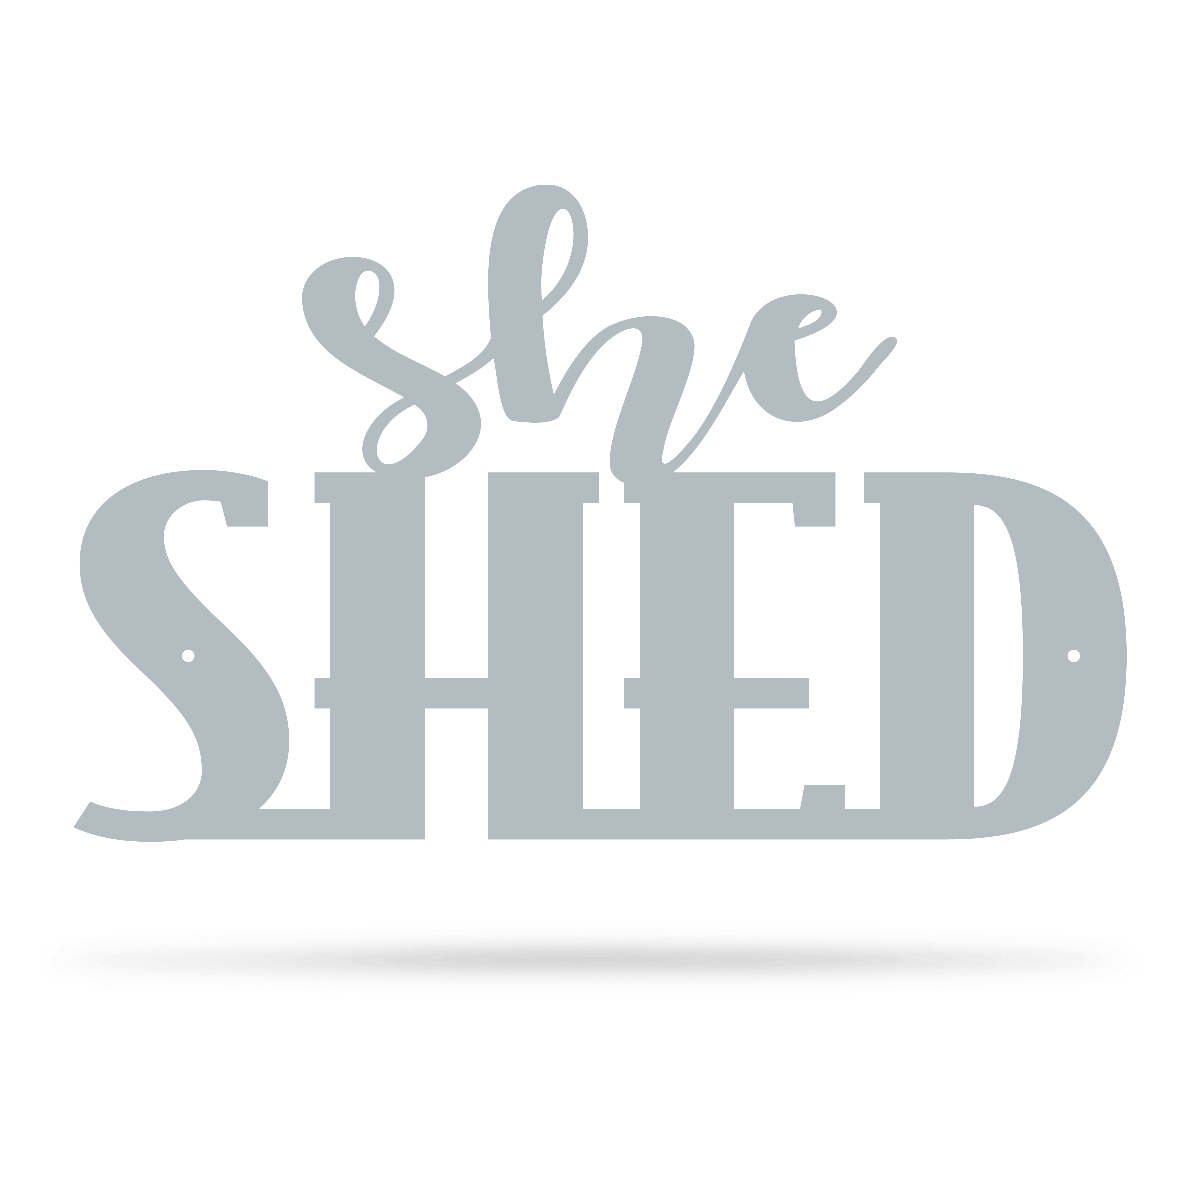 "She Shed Wall Art 7.5""x12"" / Textured Silver - RealSteel Center"